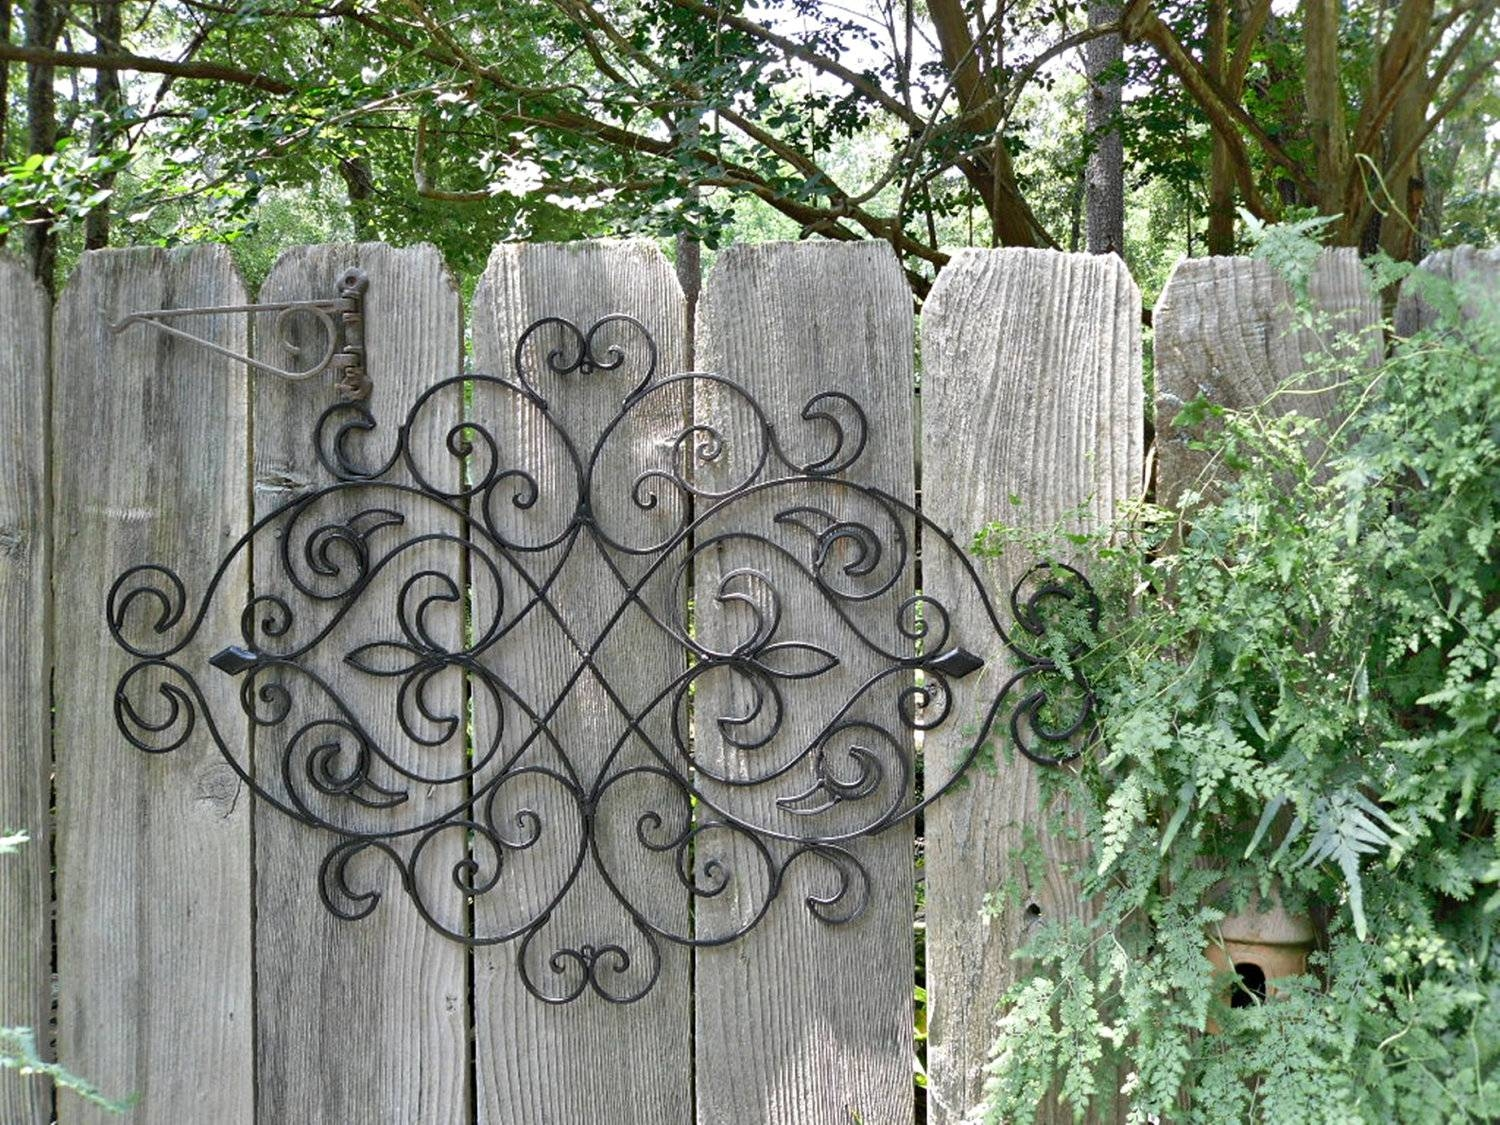 Tuscan Wrought Iron Beds Art – The Strong Wrought Iron Beds Throughout 2018 Tuscan Wrought Iron Wall Art (View 8 of 20)